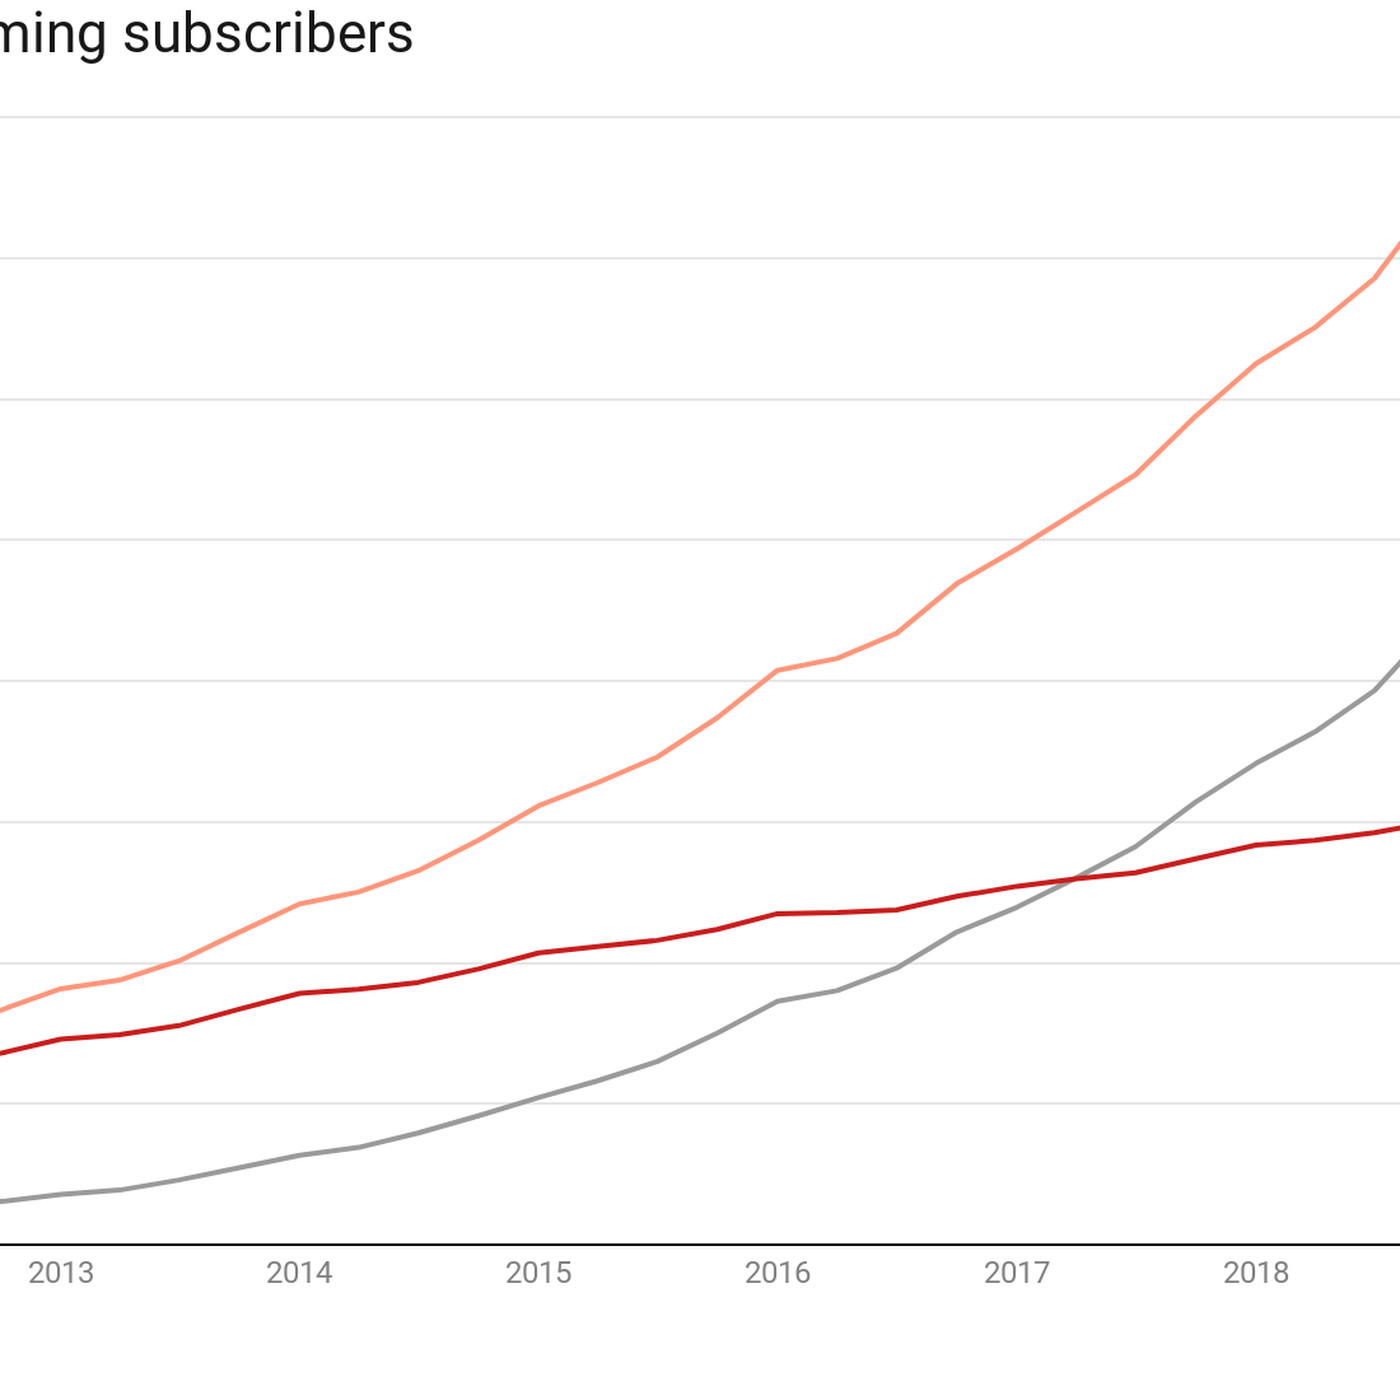 Netflix is booming internationally, but its growth is